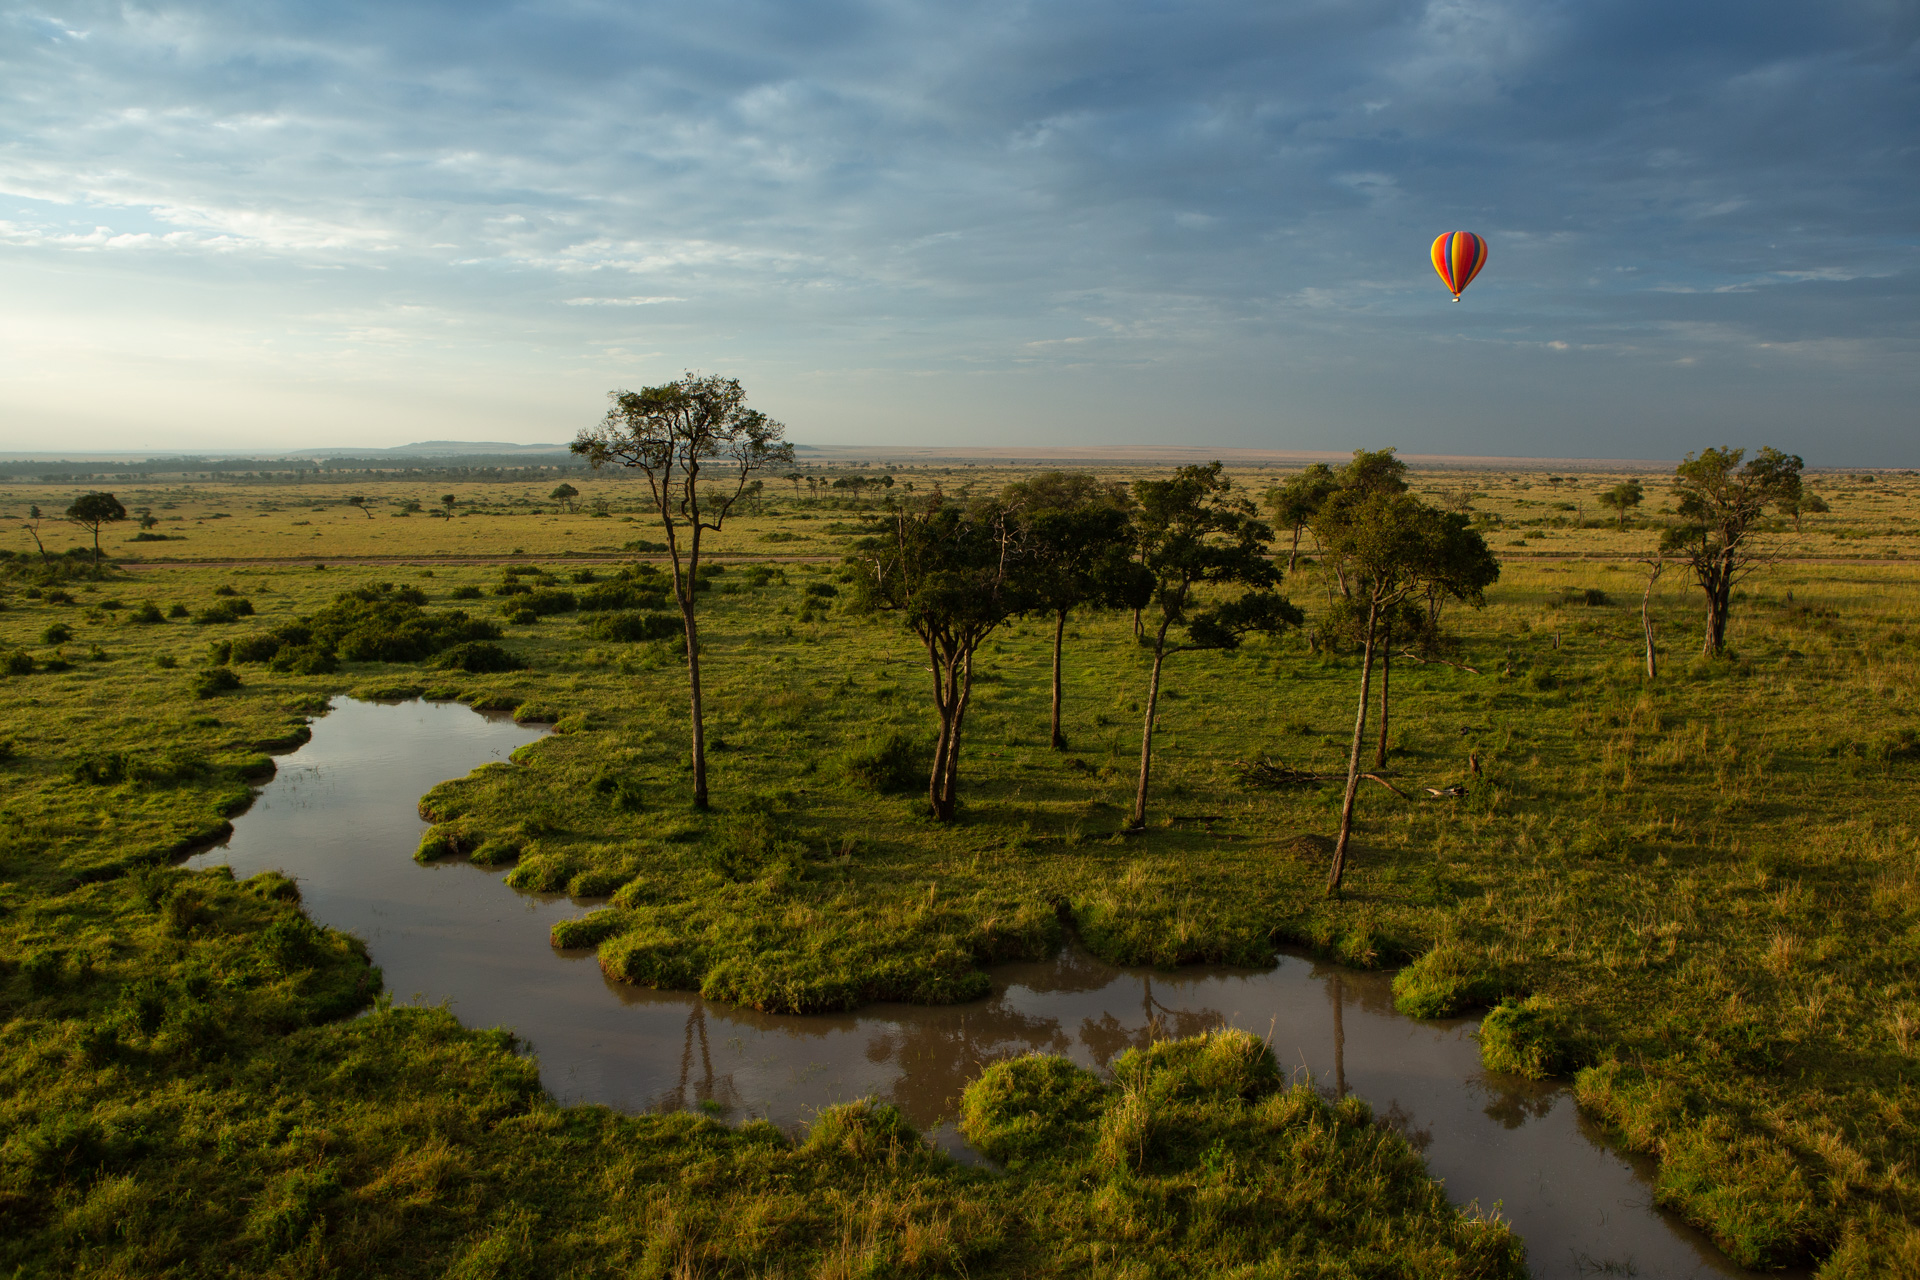 Balloon and stream